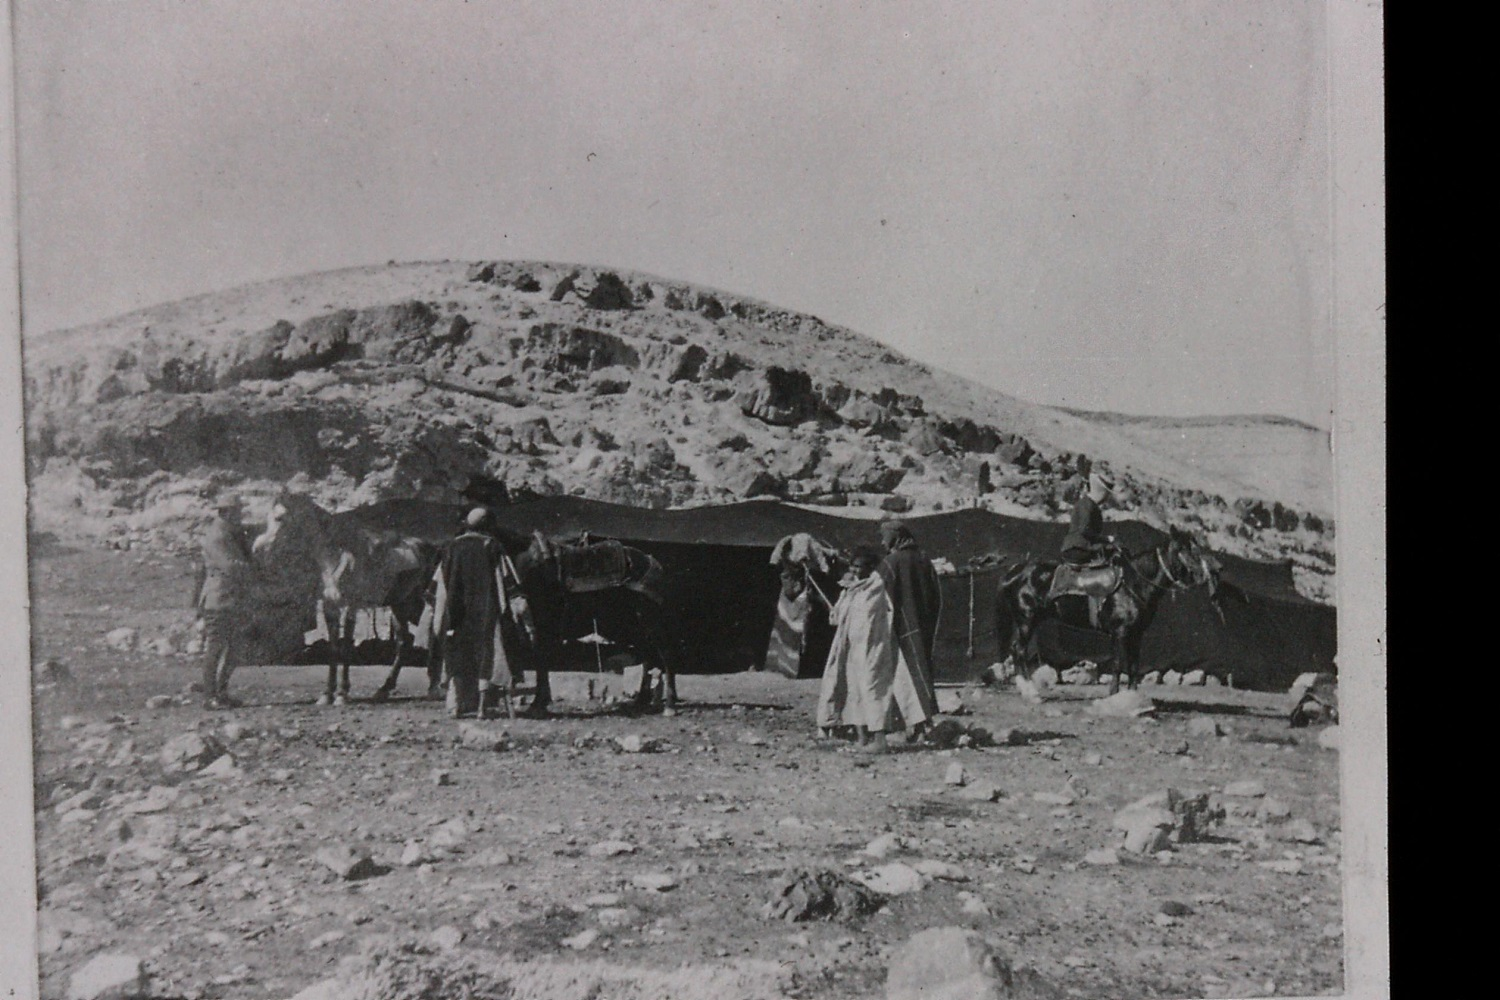 Gertrude Bell's photograph of Bedouin encampment, near Mar Sab  a, 1900. Catalogue number A474.